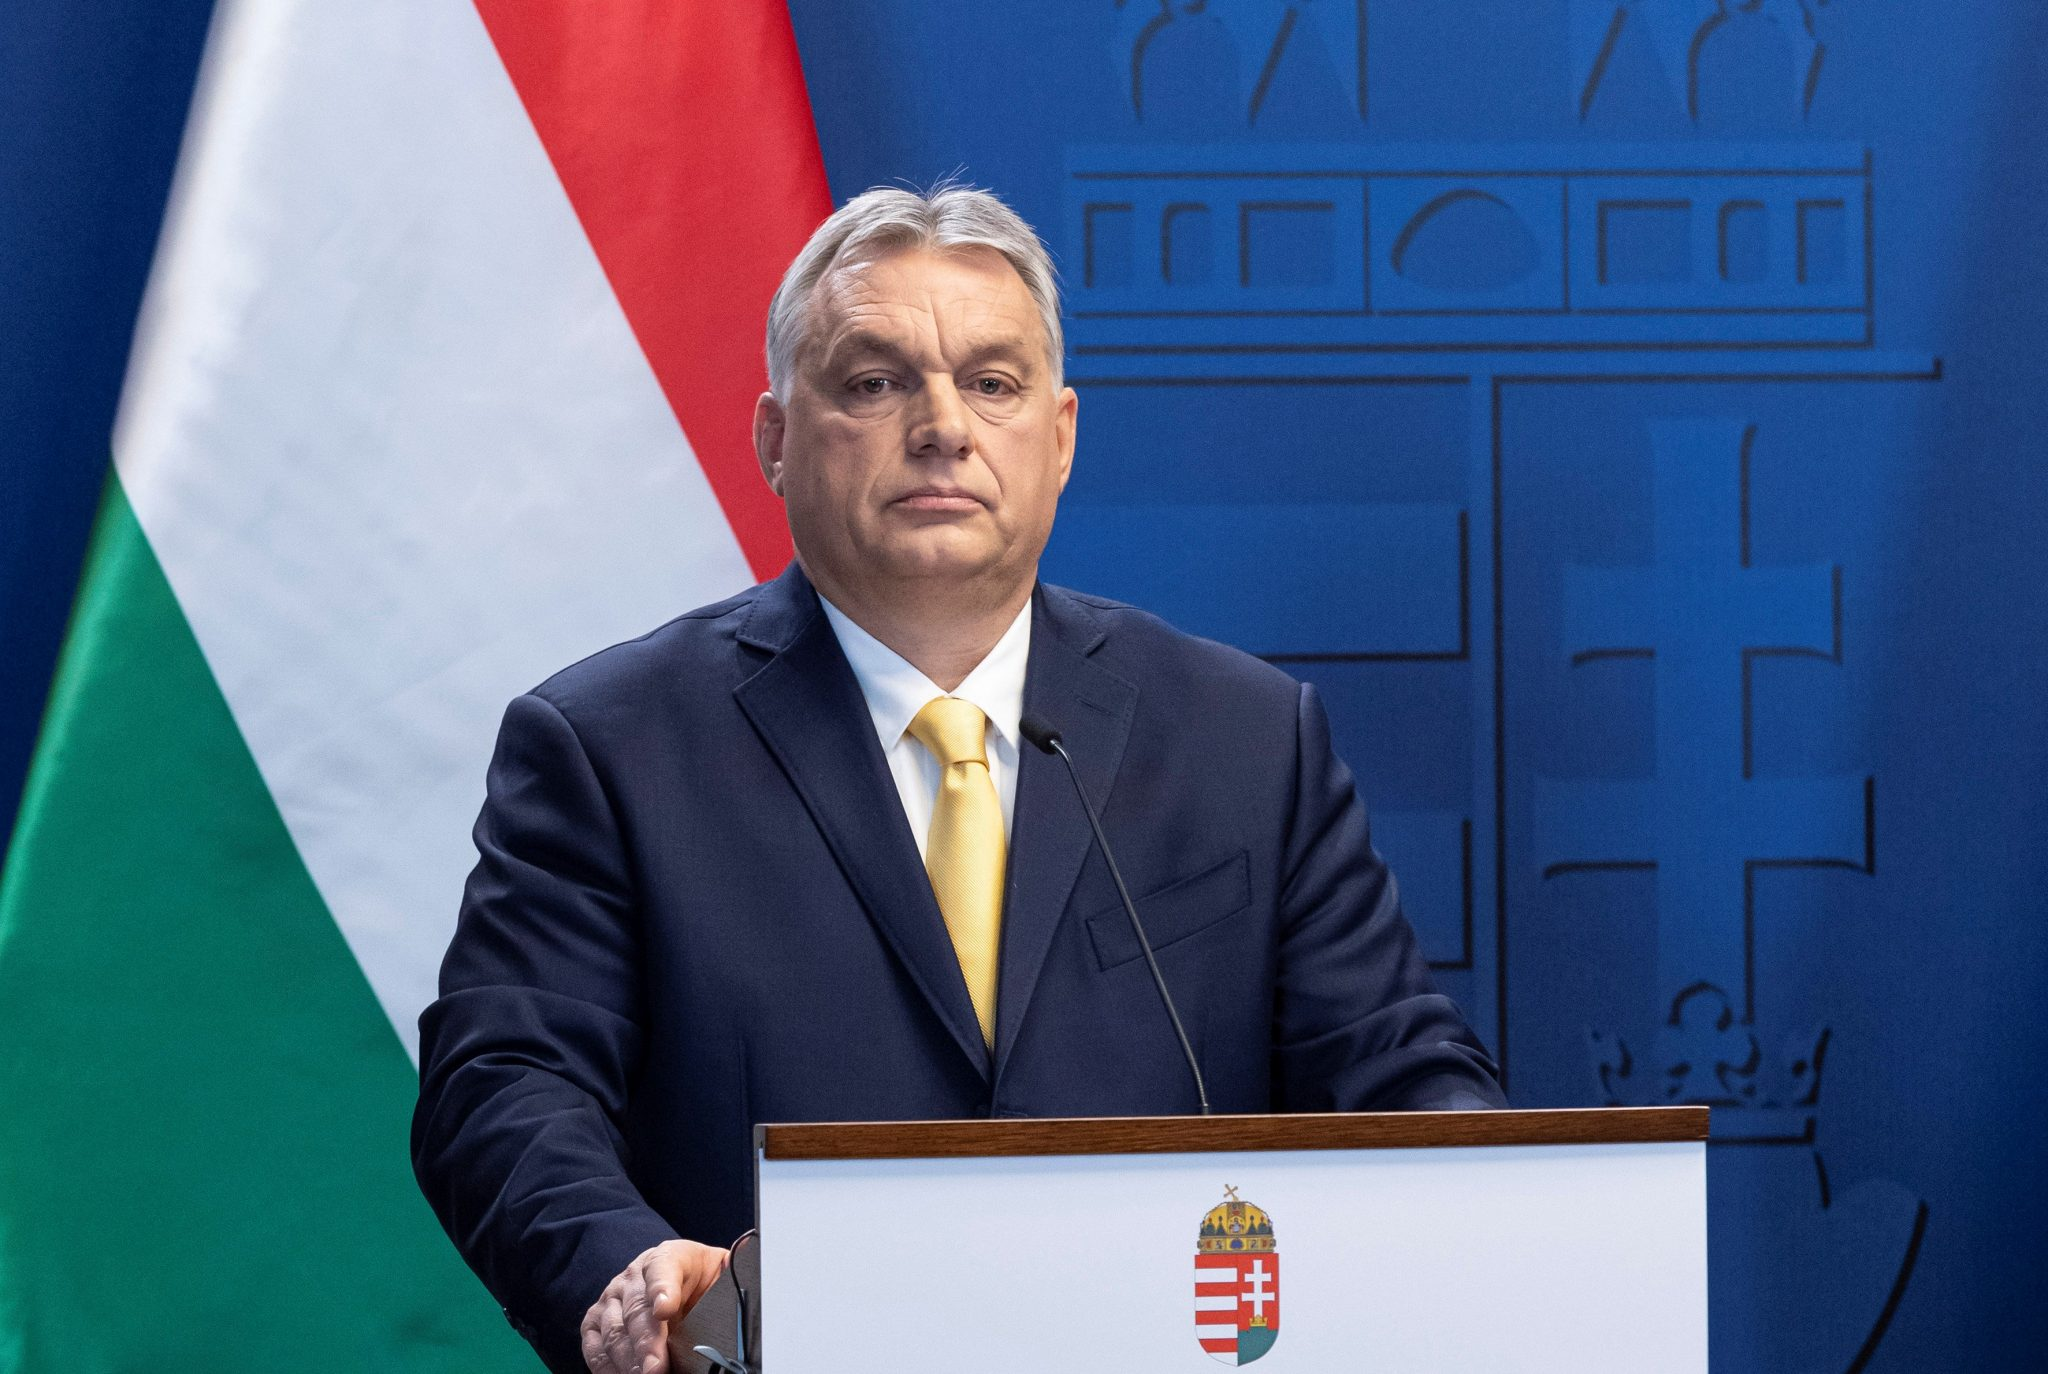 Orbán: Hungary's Standpoint against Illegal Migration Now Mainstream post's picture